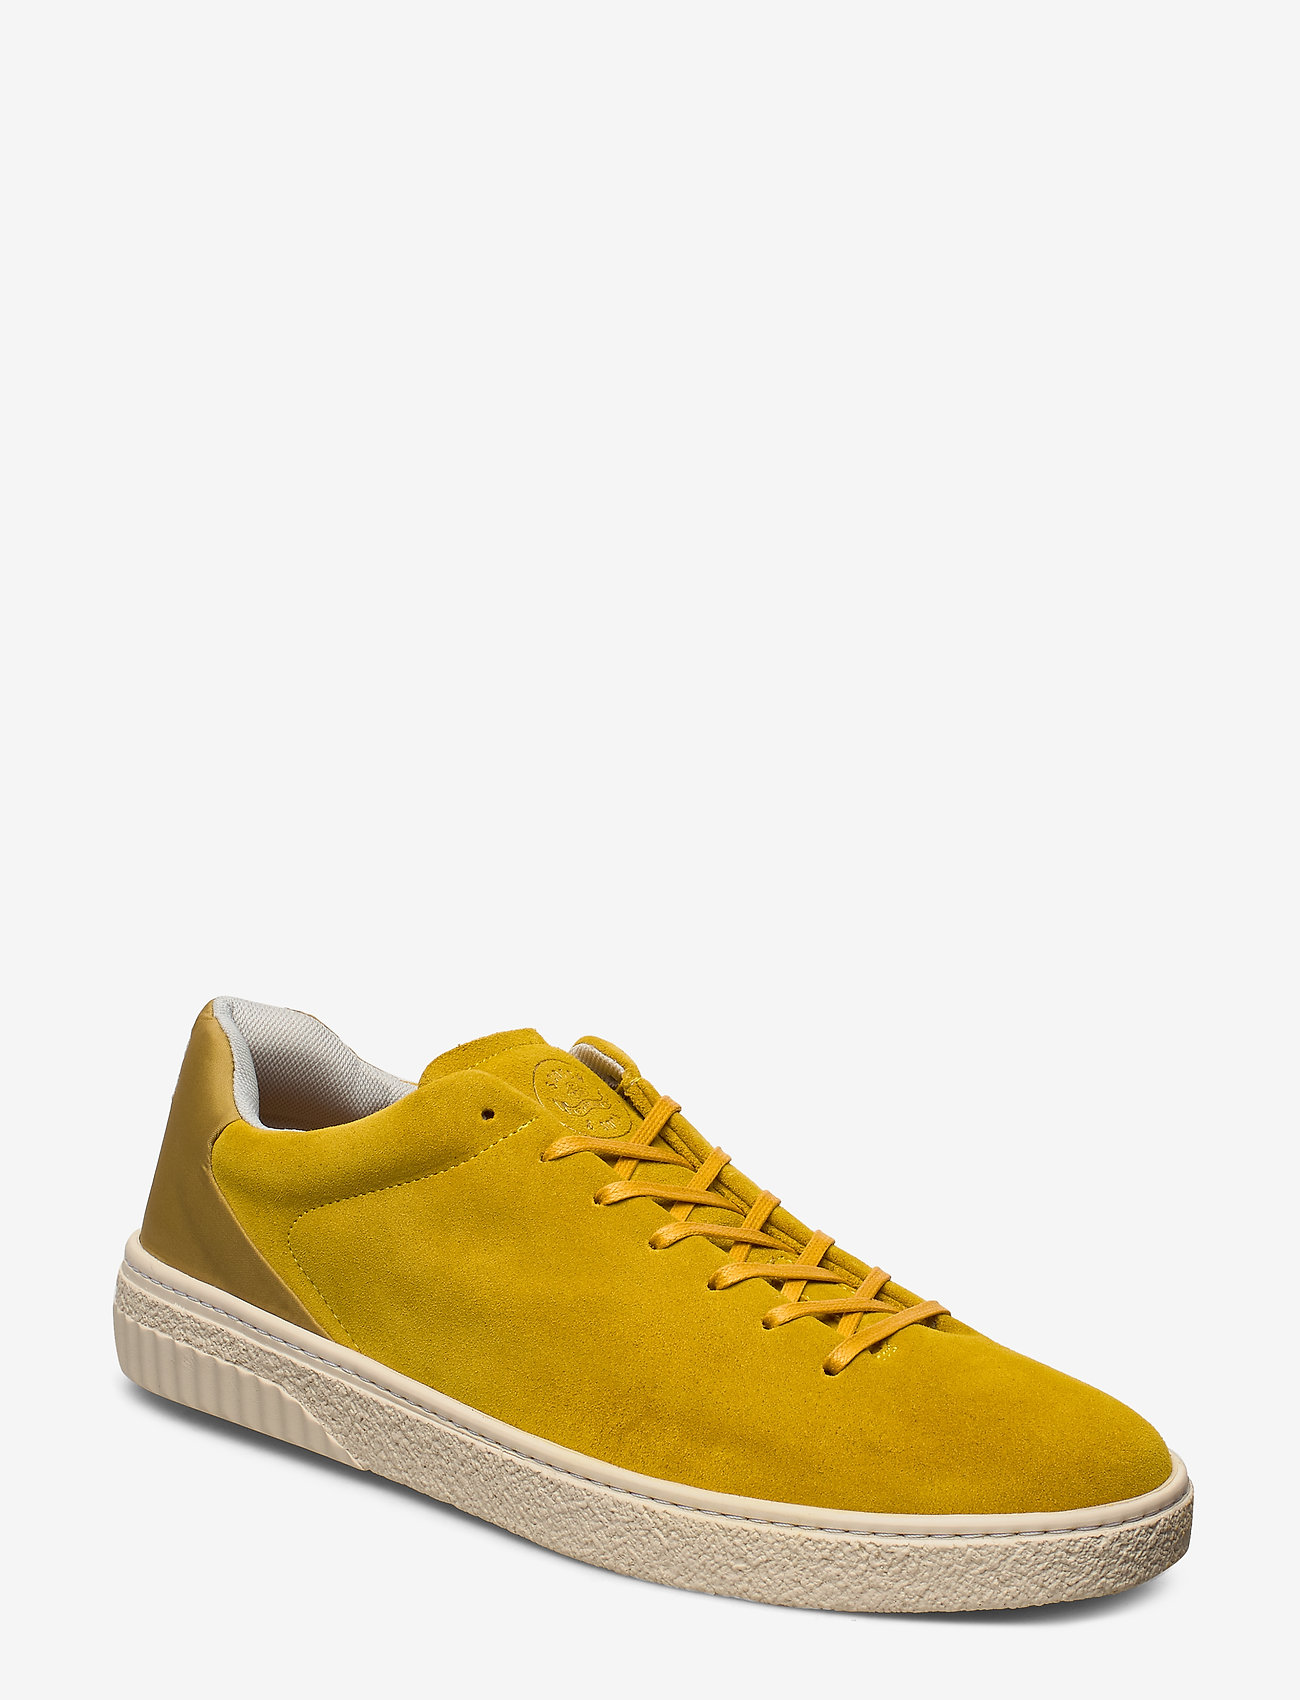 Scotch & Soda Shoes - Brilliant Sneaker - low tops - yellow - 0